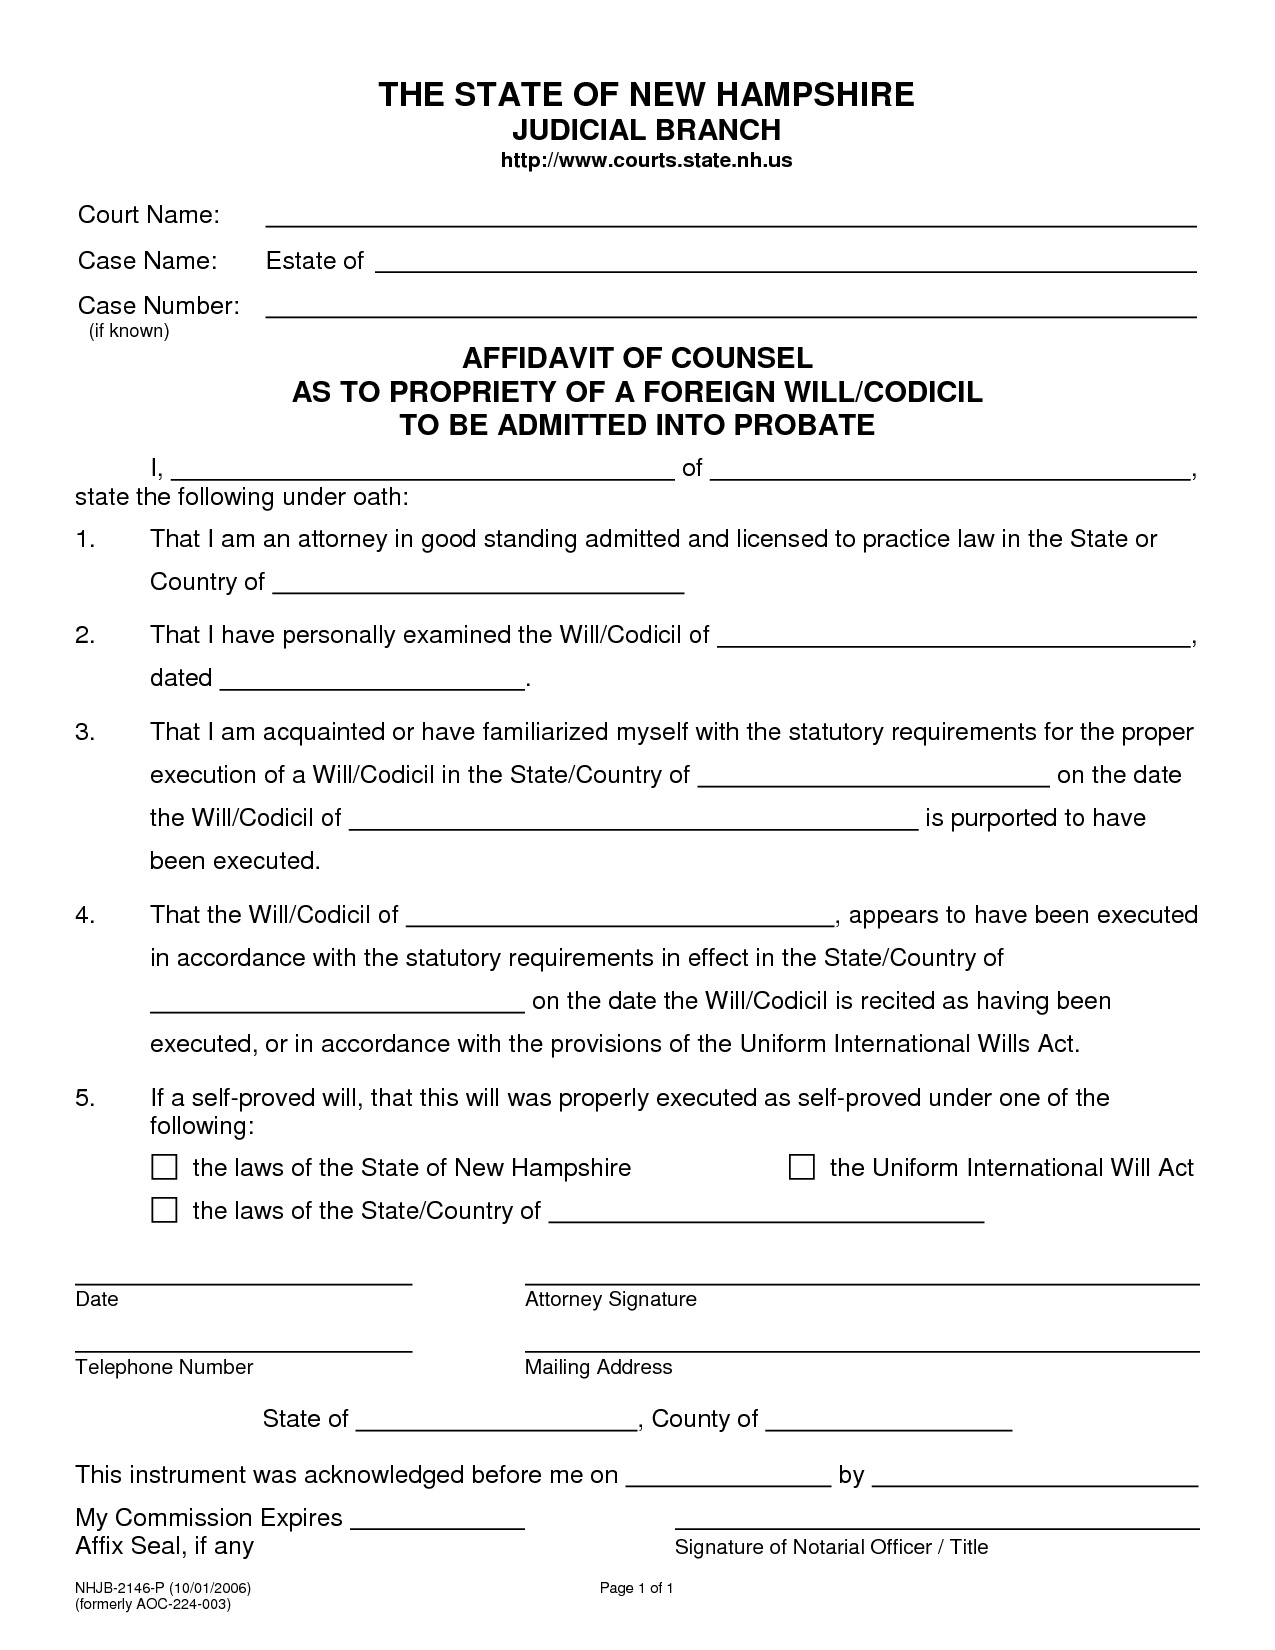 Free Printable Blank Legal Forms | Shop Fresh - Free Printable Legal Documents